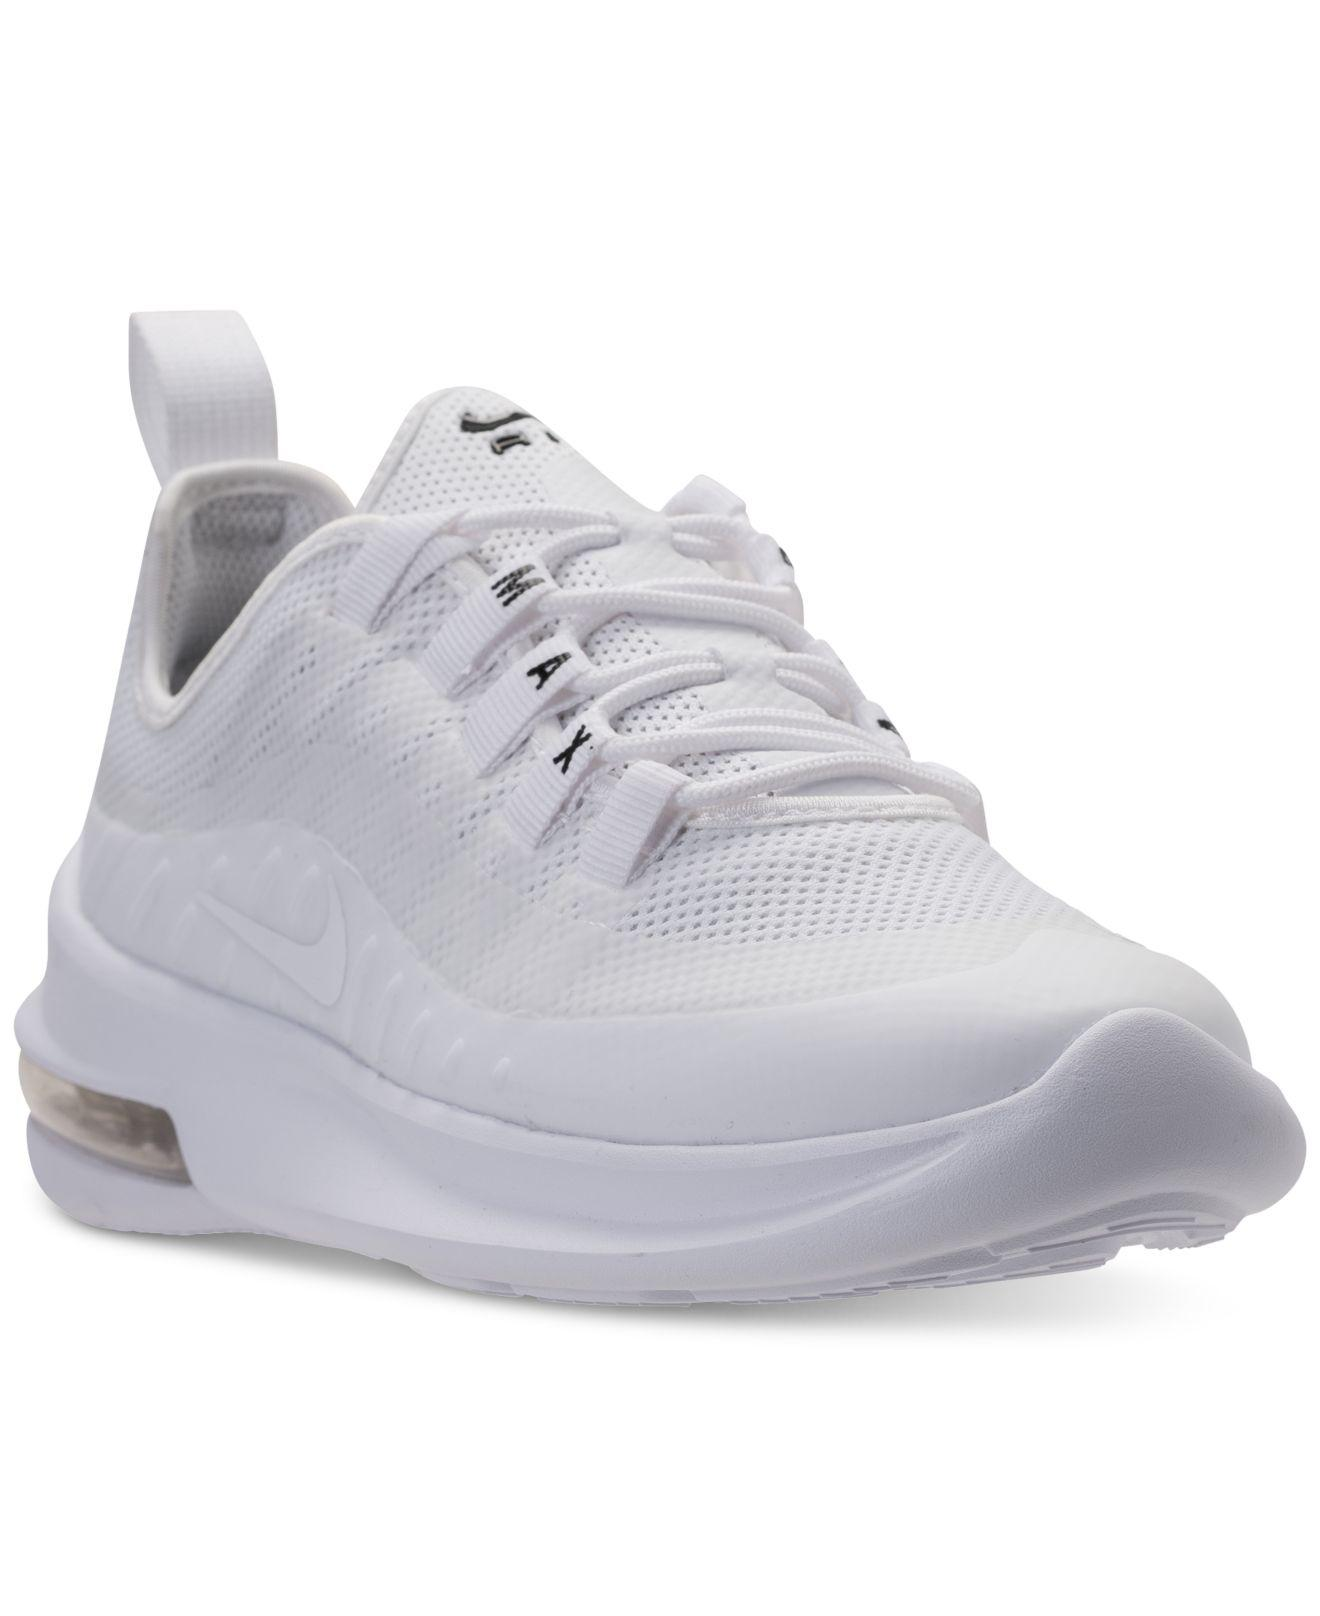 b5e10cf4a1 Nike Air Max Axis Casual Sneakers From Finish Line in White - Lyst